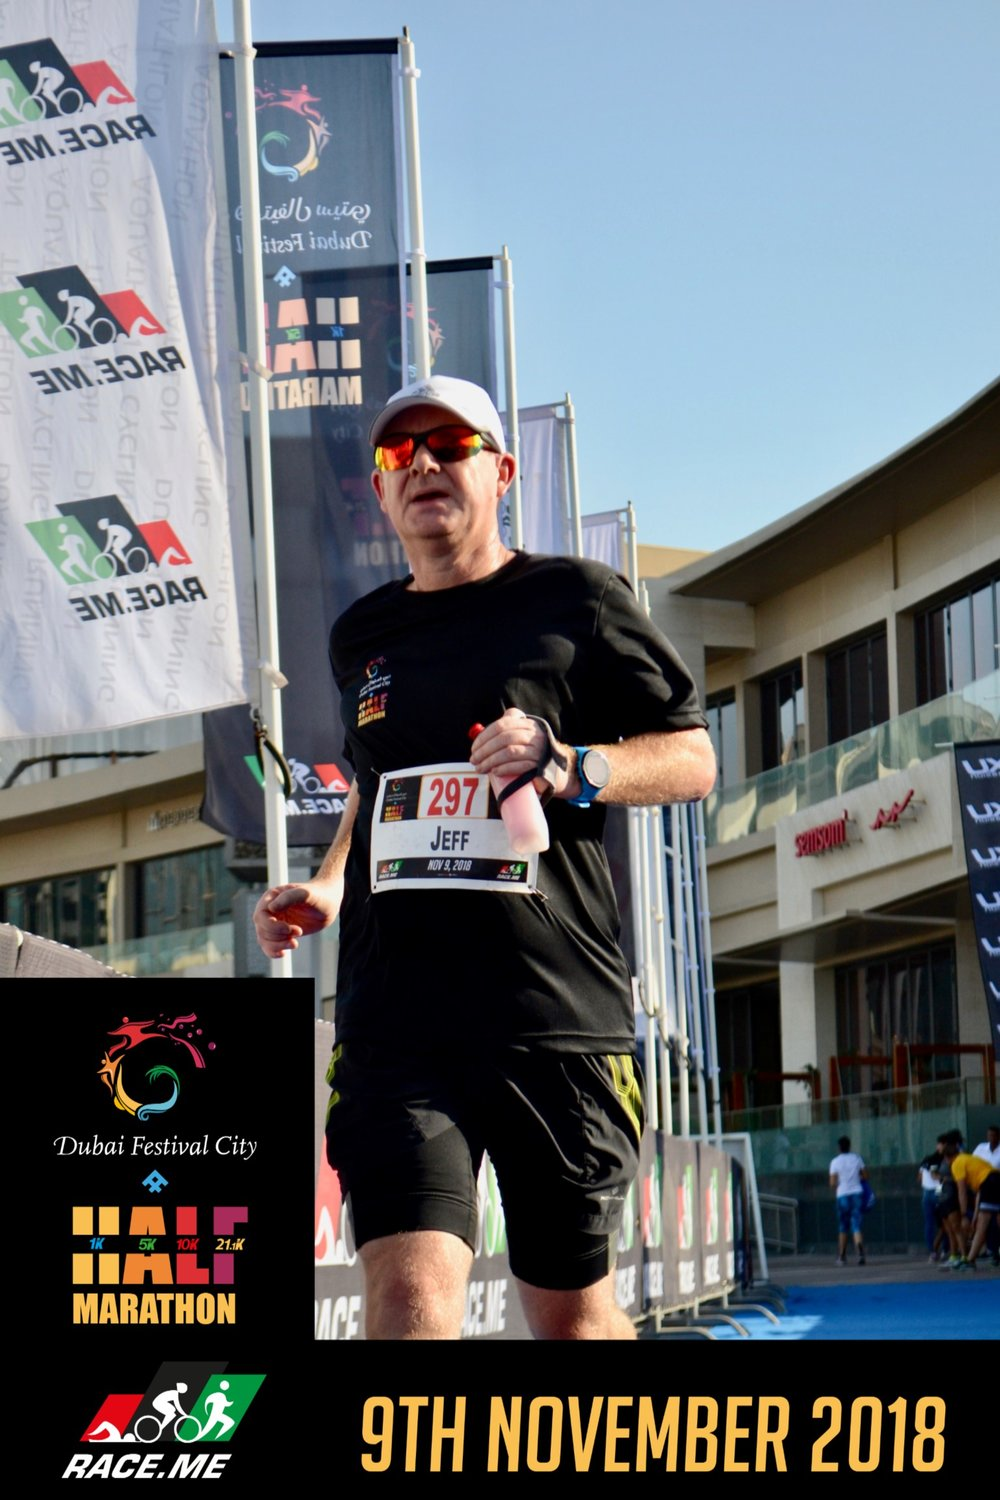 Jeff Strachan Dubai Marathon.. - Jeff has just blown us away with his continued determination. A very keen footballer until his late 30s and having finally succumbed to the realisation that twisting and turning isn't so good on a body beyond a certain vintage, Jeff is a relative newcomer to the sport.Jeff has been inspired to run partly by his experiences crewing us at ultras, and realising that this beautiful world of running is very accessible to all. Having dabbled in 5ks and 10ks he has very bravely thrown his hat into the marathon ring and will run his debut marathon in Dubai at the end of January 2019.daznbone have been planning and monitoring Jeff's training since mid September and we are very excited with his progress. He's probably our most consistent athlete and his fitness graphs on Training Peaks are a work of art. Jeff has been cleverly using a steady build-up of low key races in Dubai (where he lives and works), going through 10k and 10 mile trail races up to a recent half marathon where he was so so close to busting the 2 hour mark.We're delighted with Jeff's build-up so far and can't wait to see him take on the Dubai marathon.